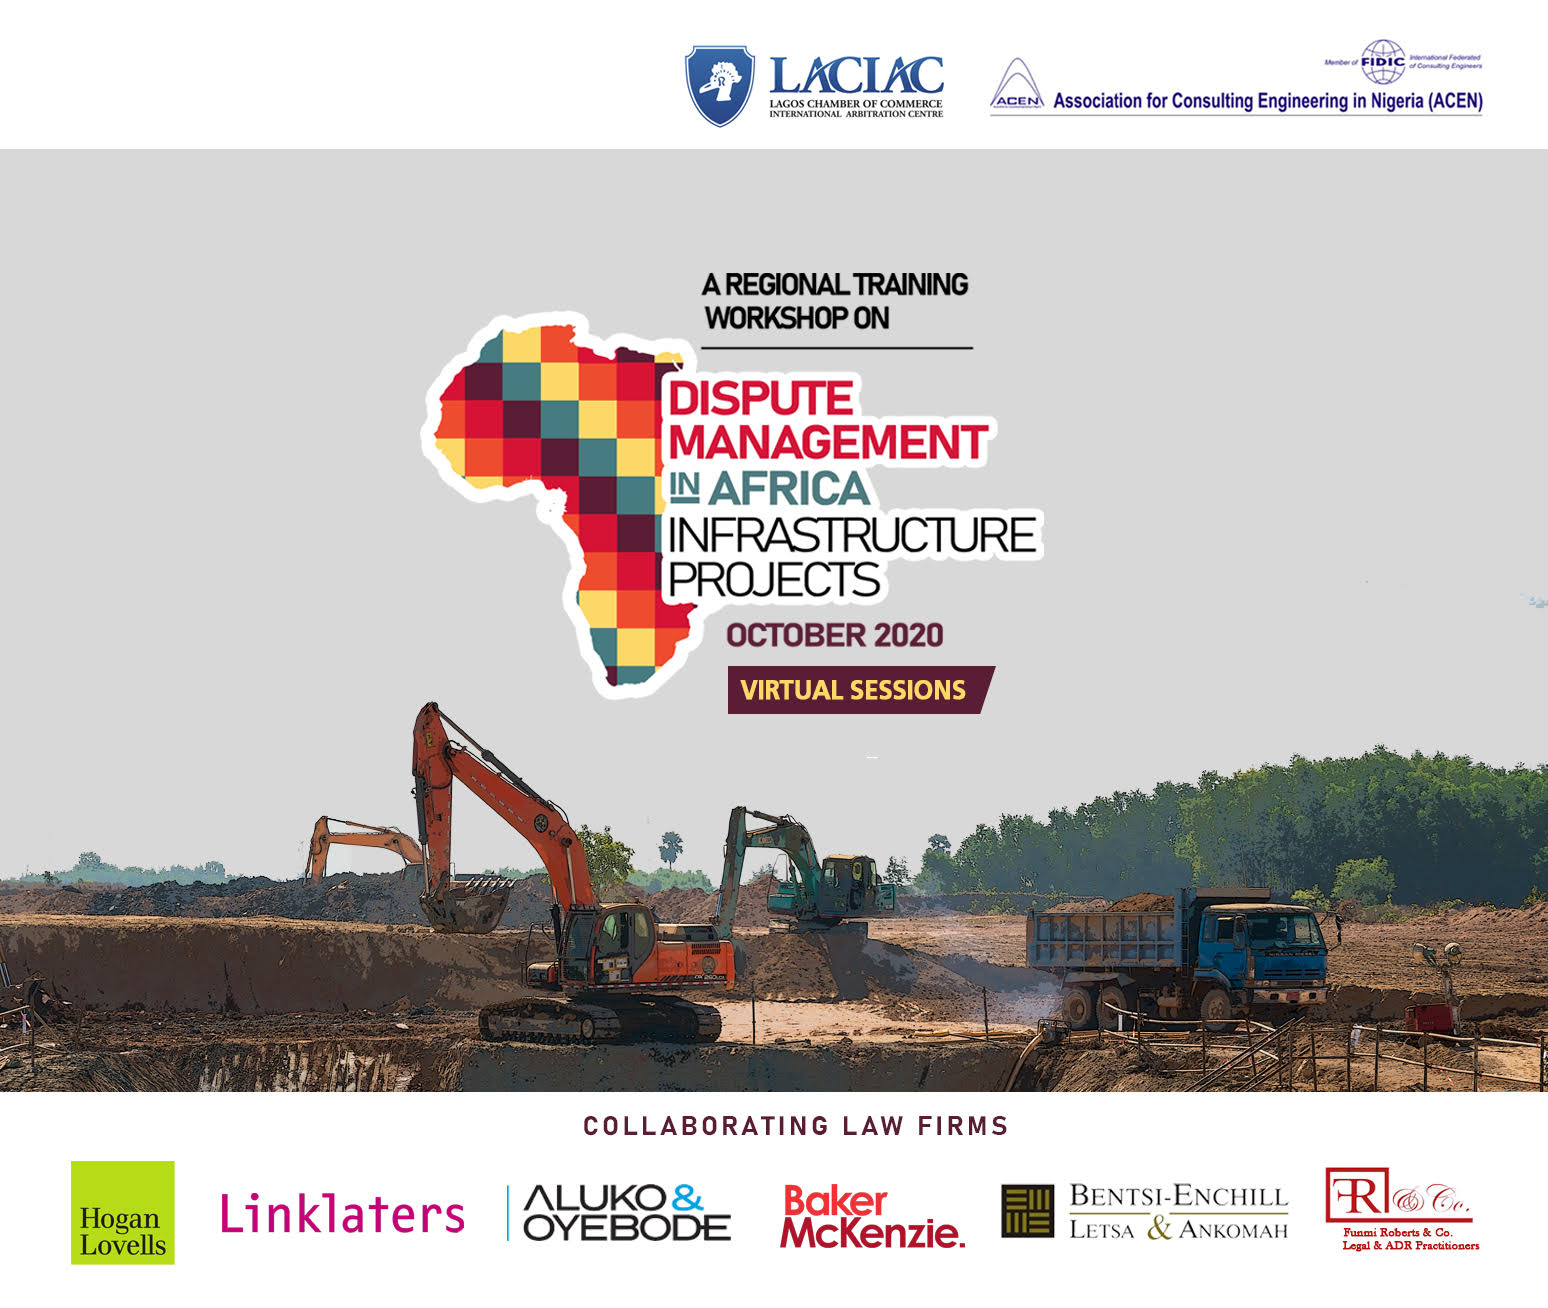 Training: Dispute Management In Africa Infrastructure Projects